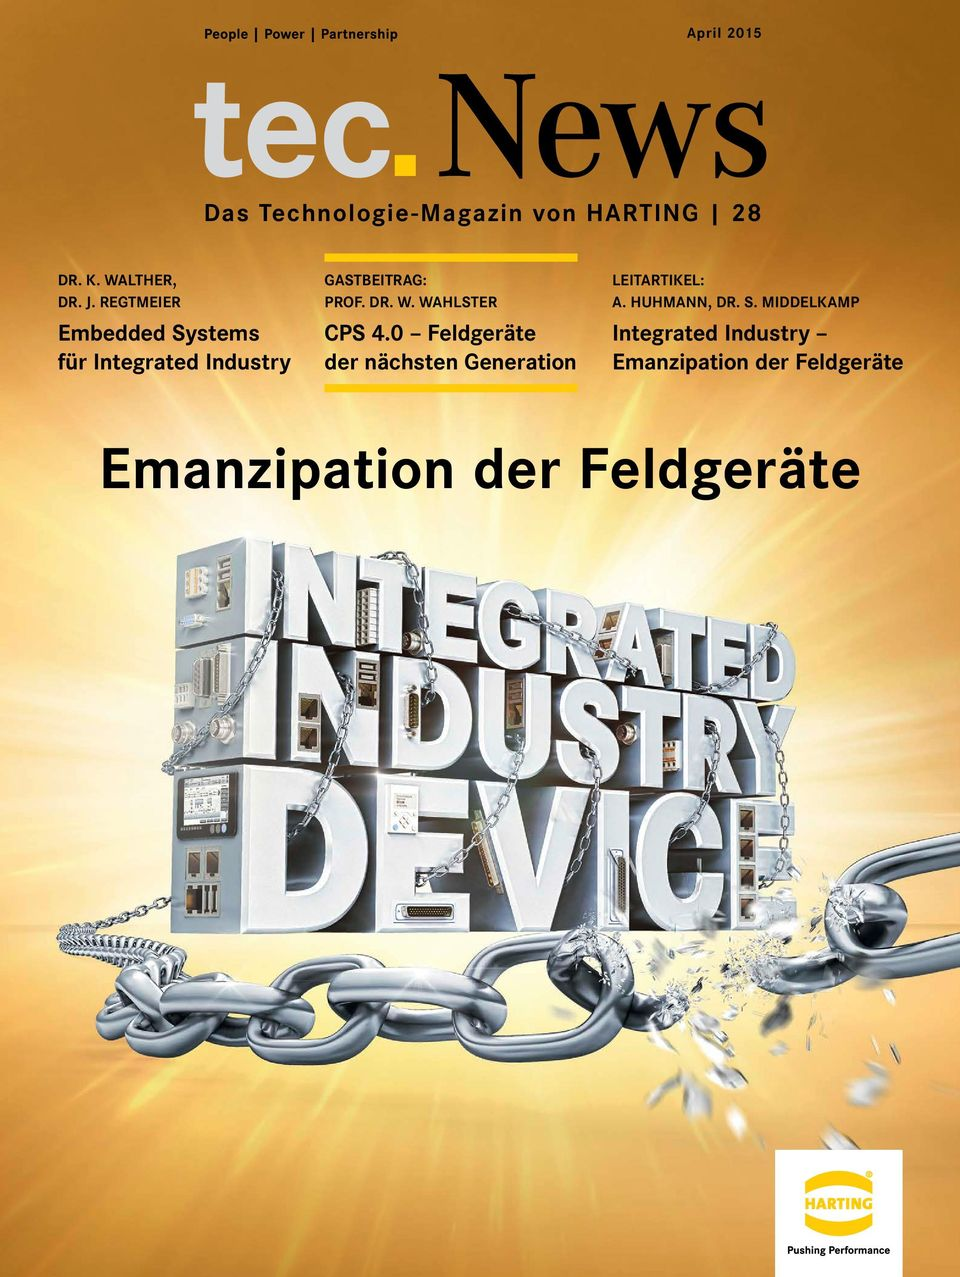 MIDDELKAMP Embedded Systems für Integrated Industry CPS 4.